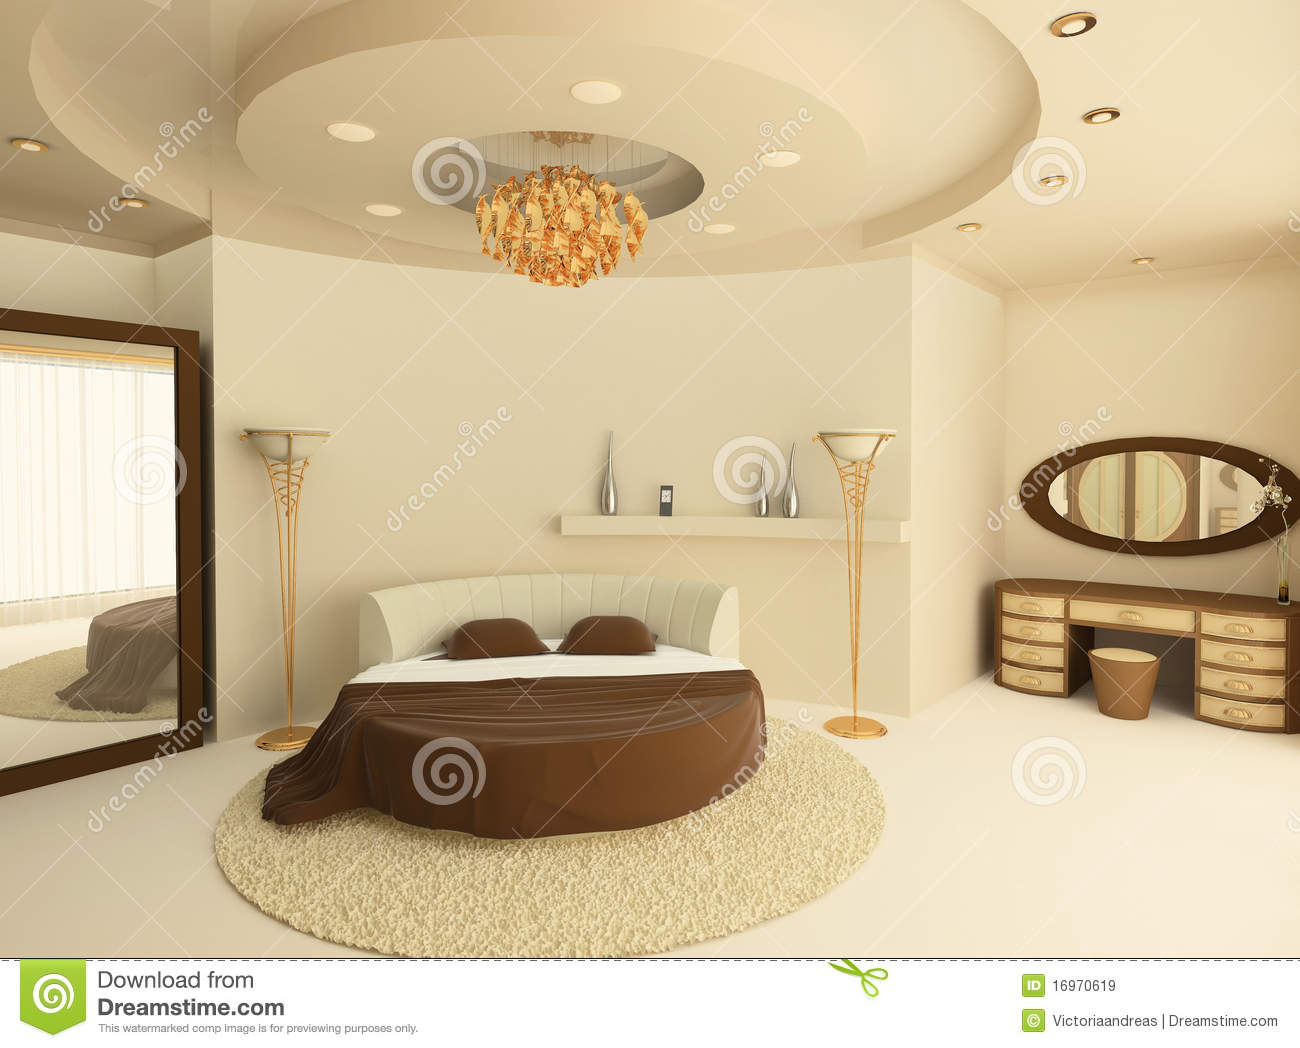 Bed Suspended From Ceiling Round Bed With A Suspended Ceiling In Bedroom Royalty Free